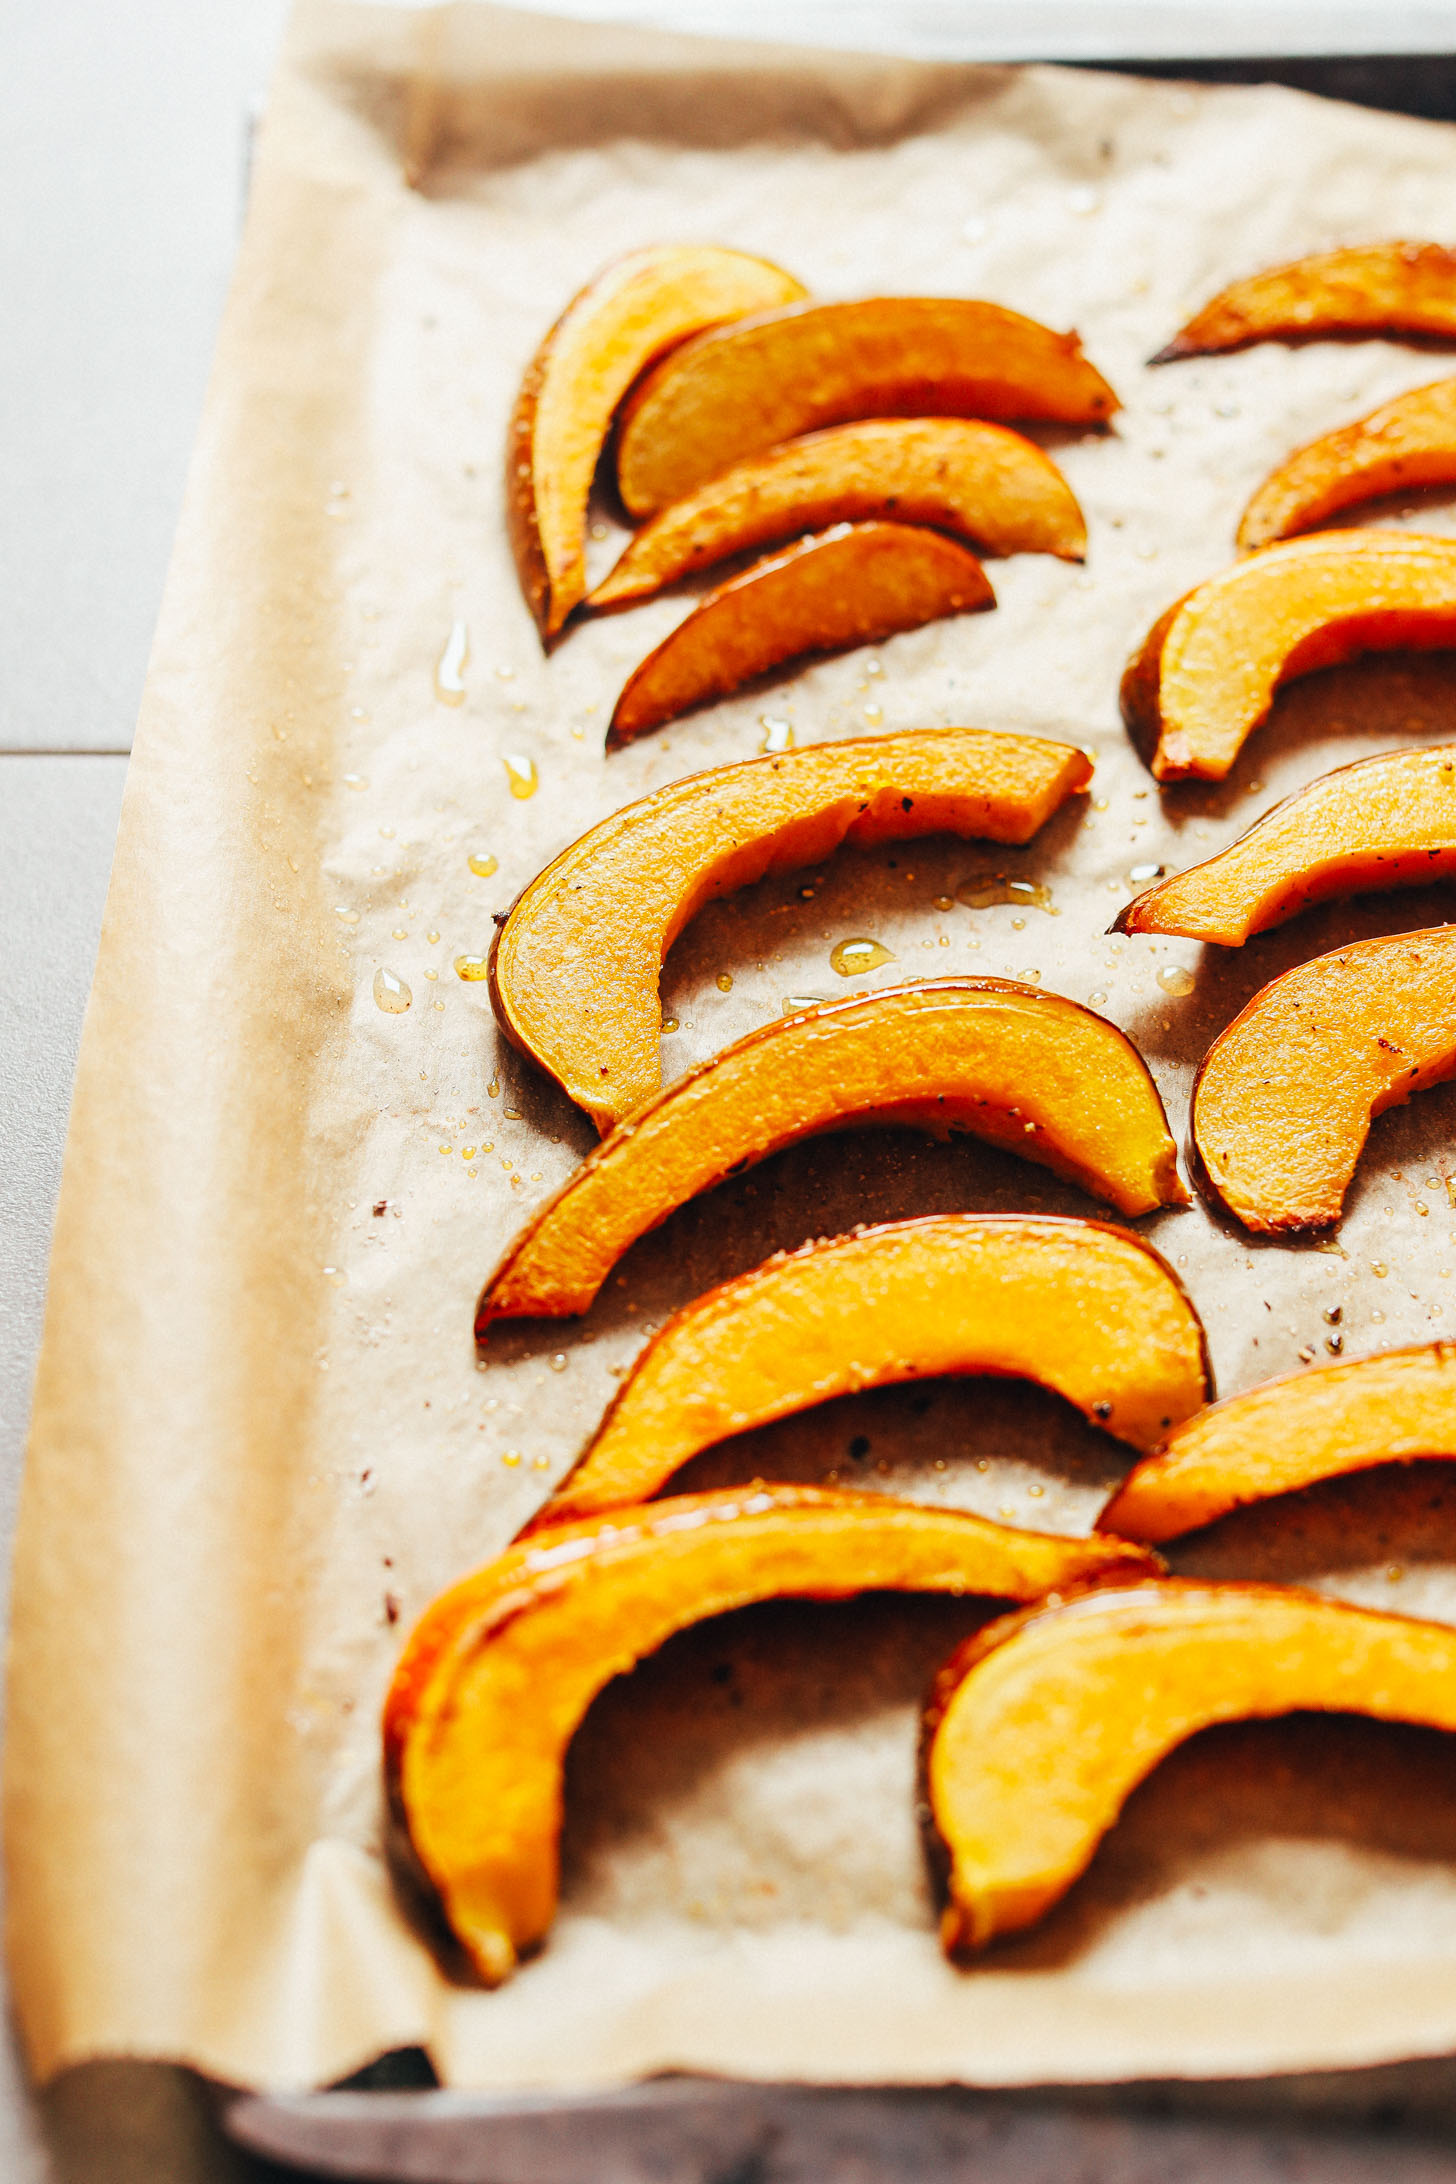 Roasted acorn squash slices on a parchment-lined baking sheet